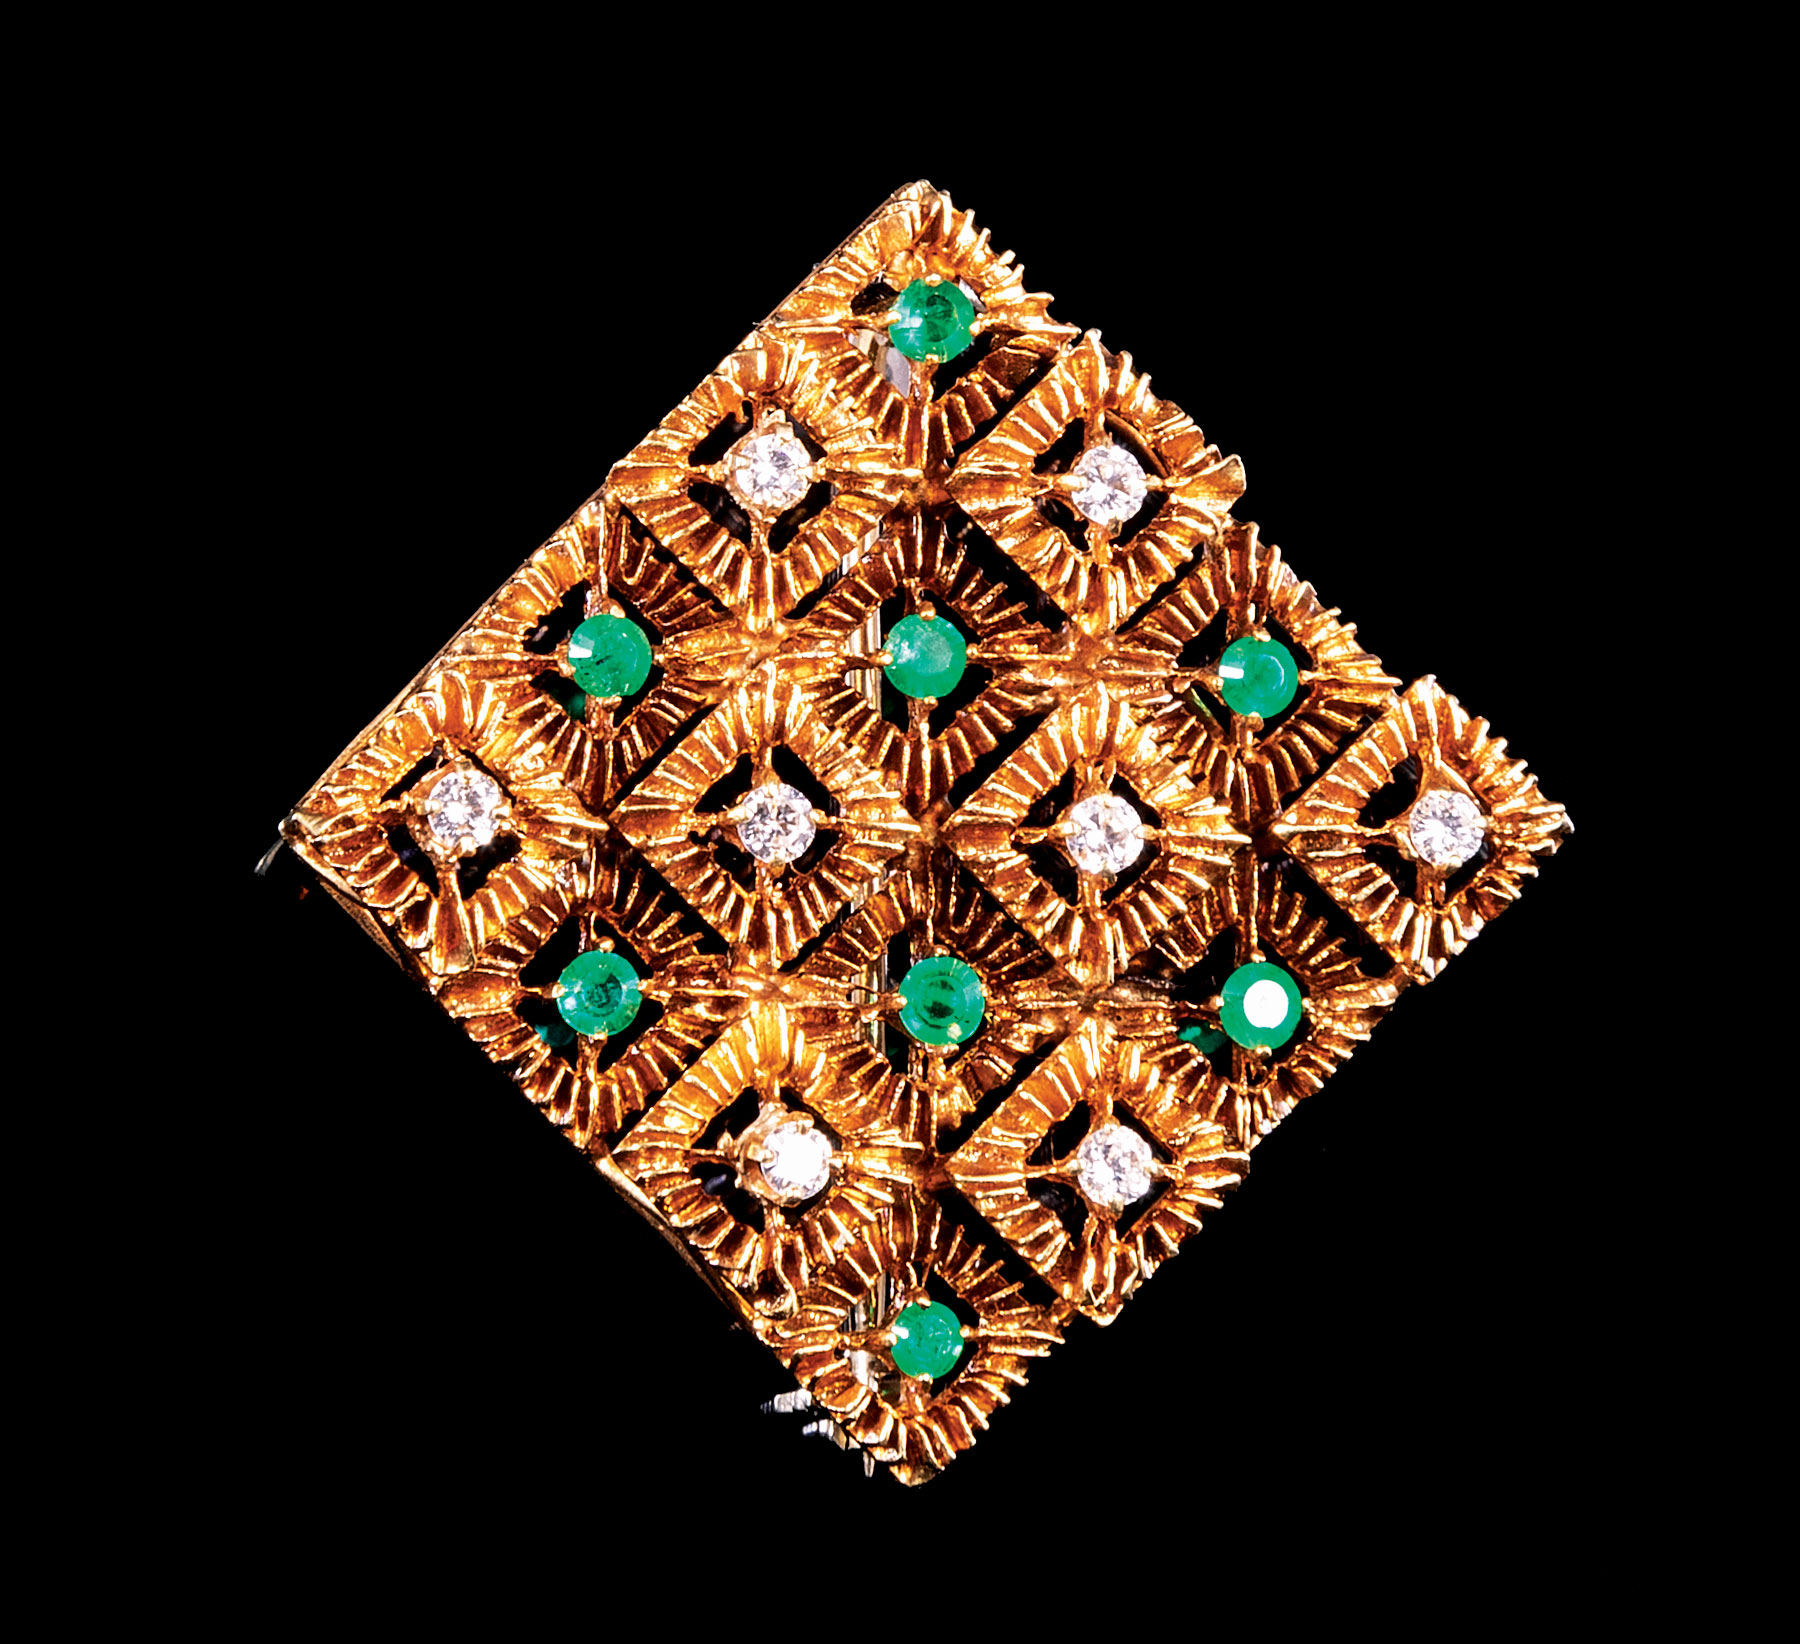 Lot 583 - Vintage 18 kt. Yellow Gold Emerald and Diamond Brooch , 8 prong set round brilliant cut emeralds,